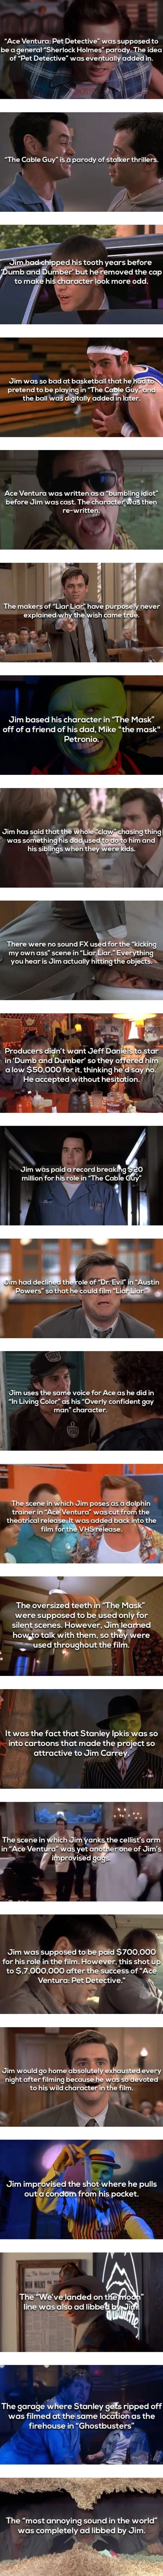 Facts about Jim Carrey films